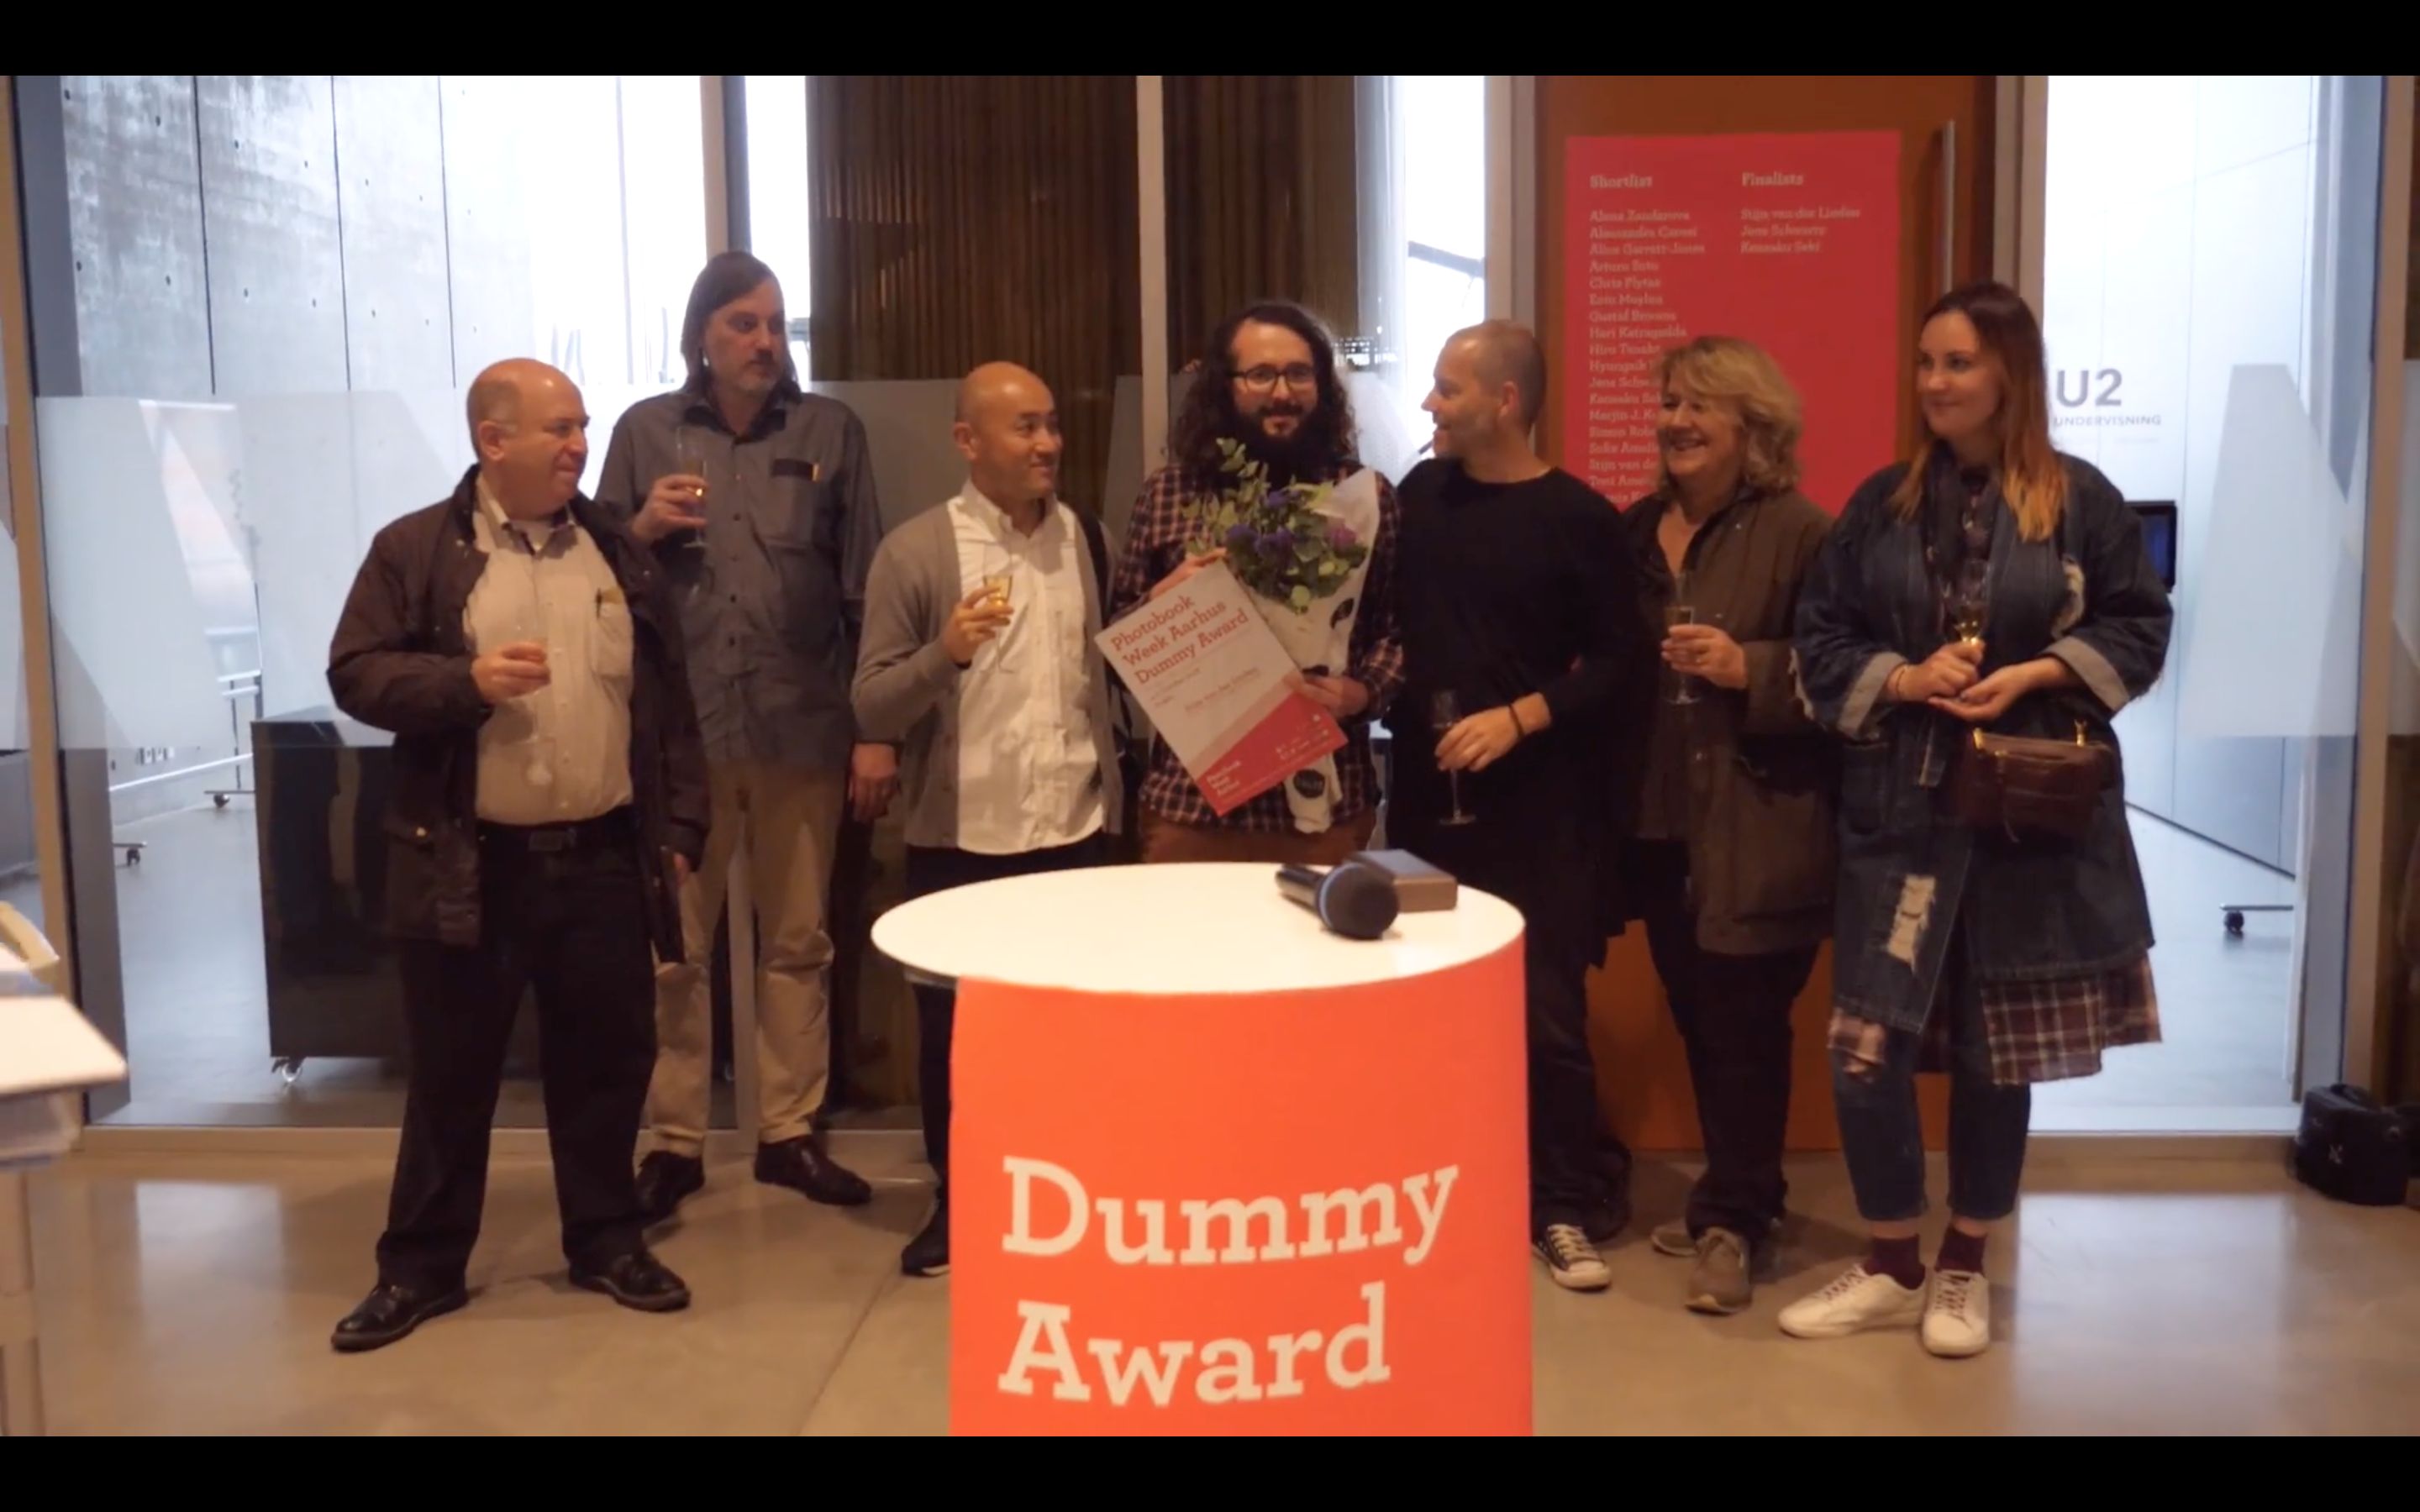 Photobook Week Aarhus announces the winner of Dummy Award 2018